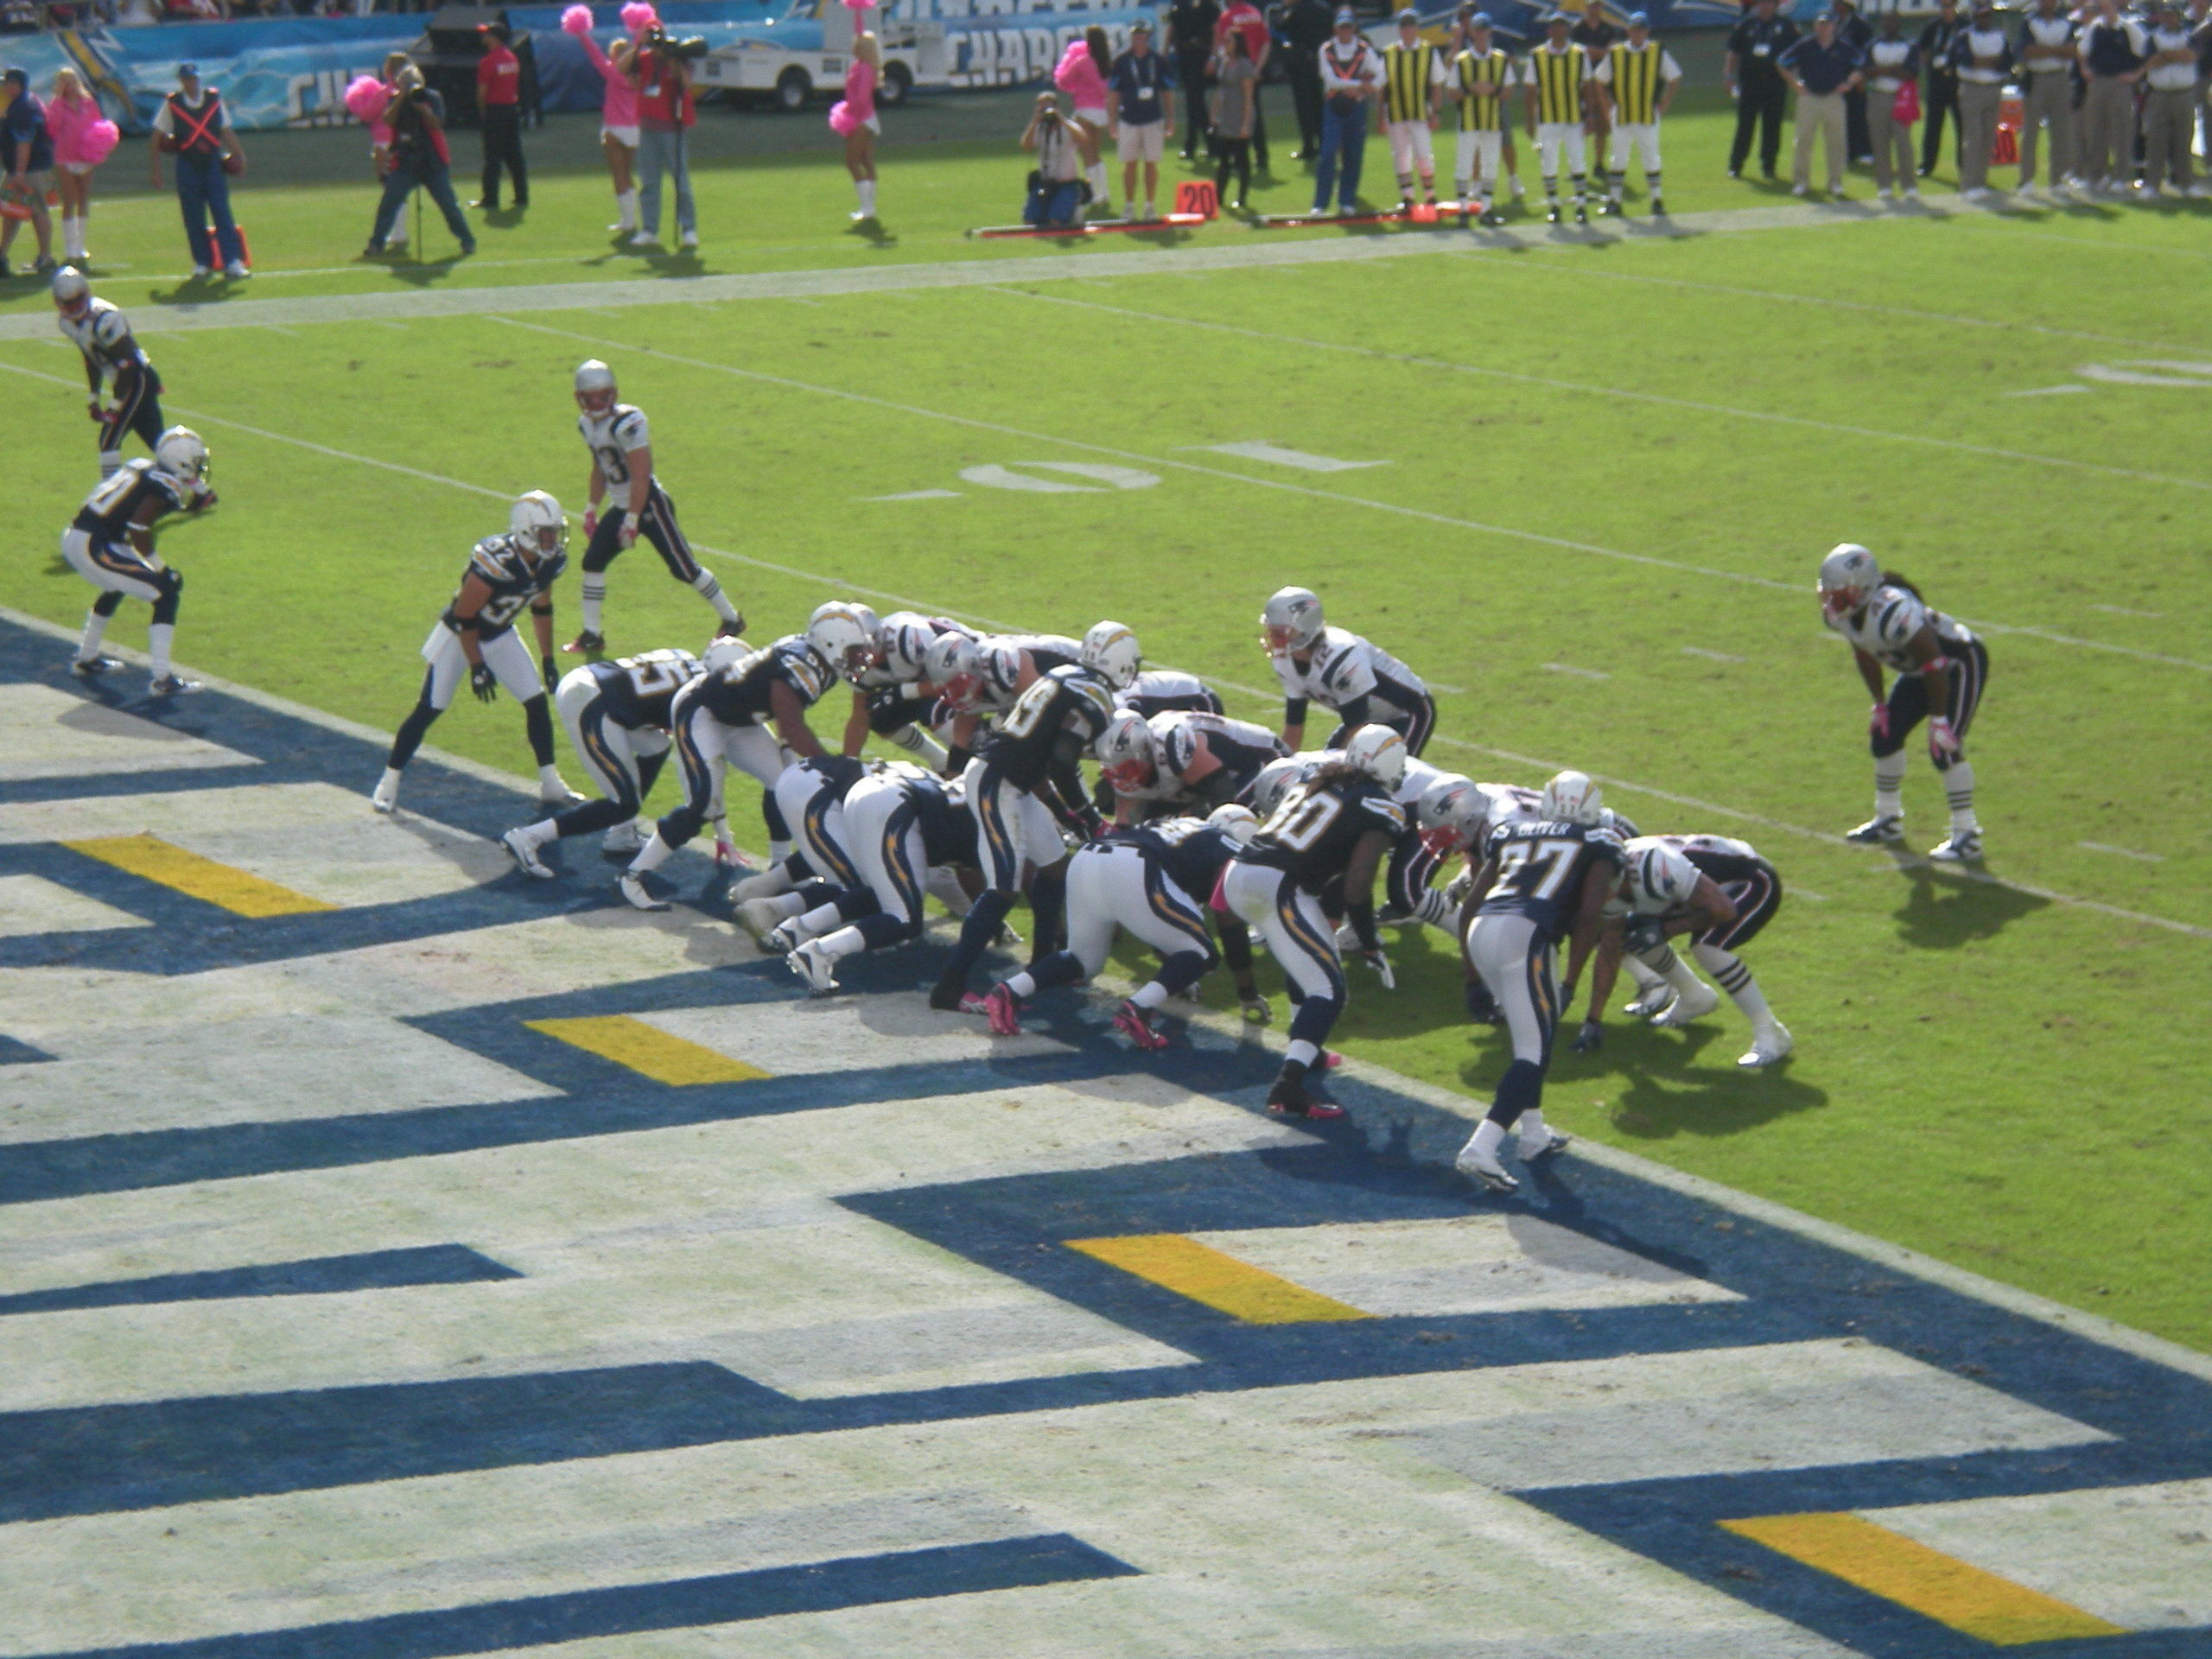 2560x1920 San Diego Chargers images LETS GO D !!! HD wallpaper and background photos